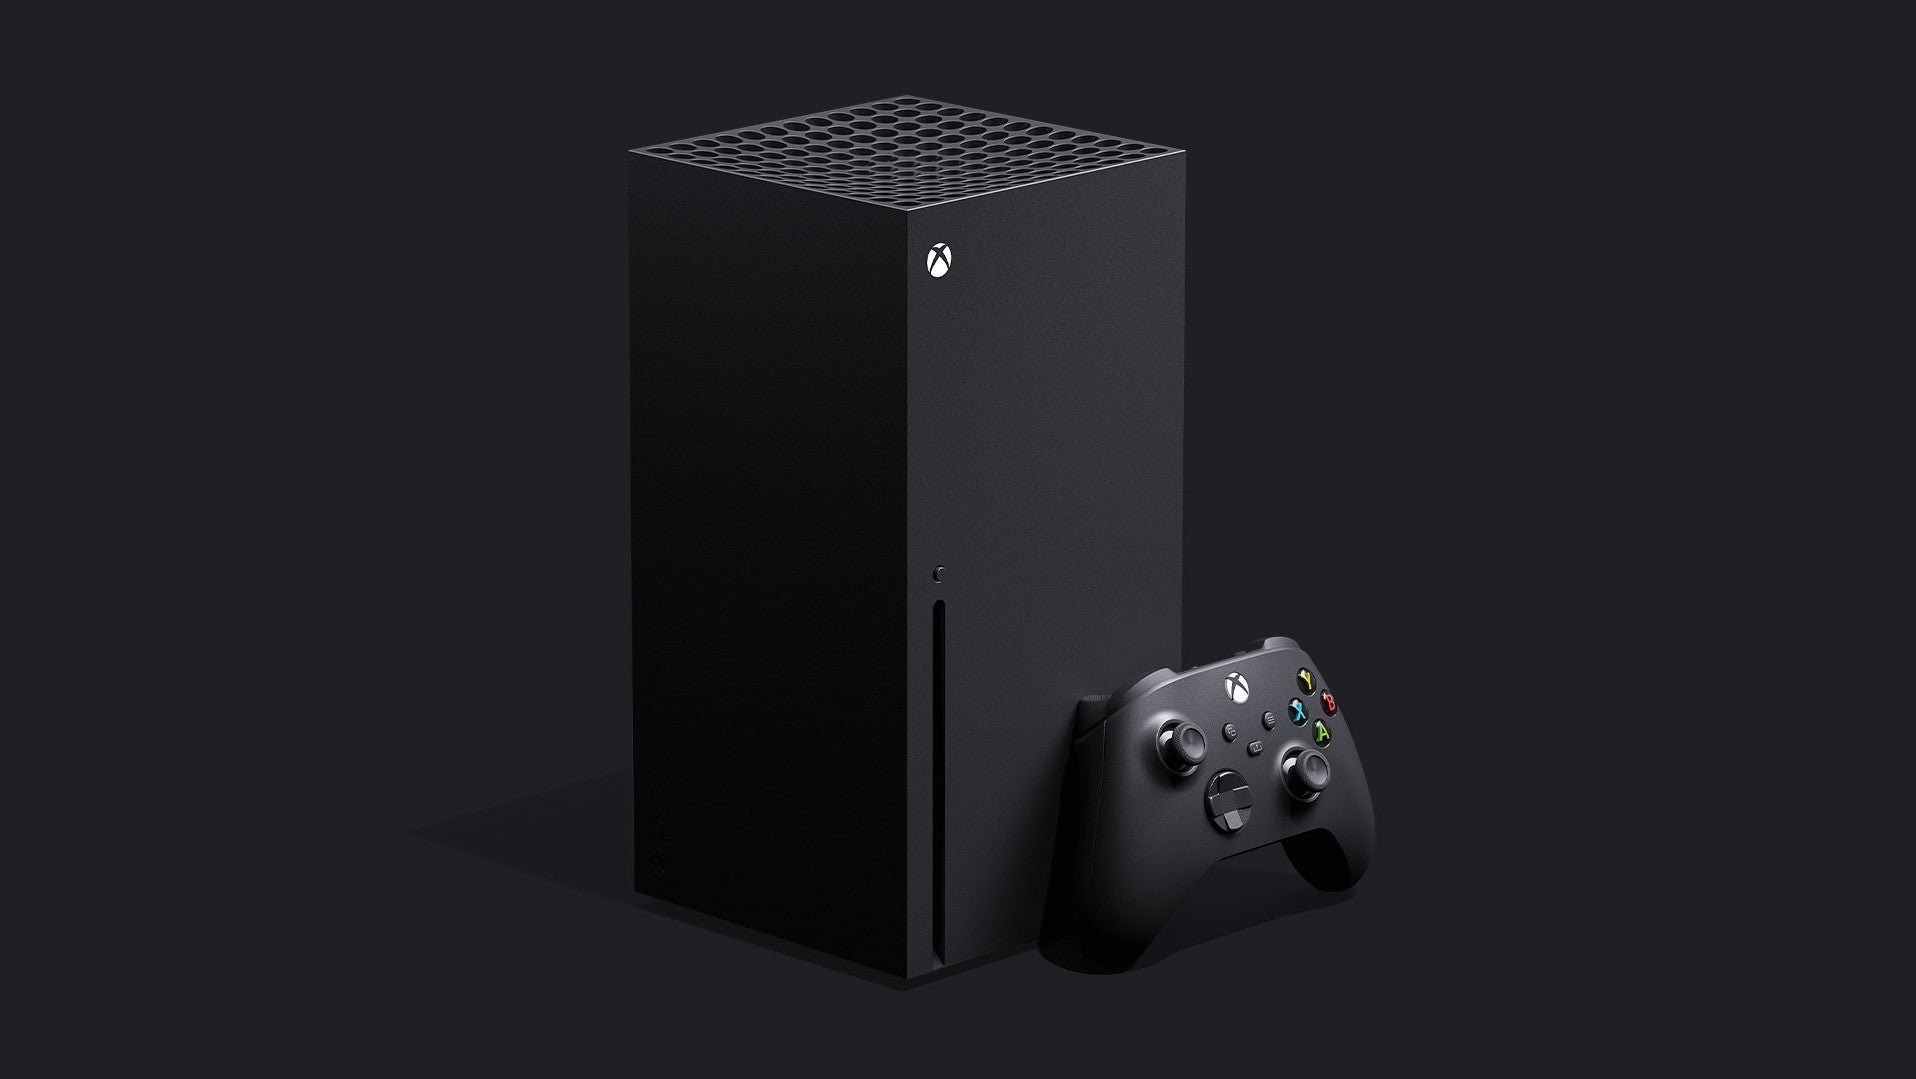 AMD's Ray Tracing Looks Great On The Xbox Series X, But It's Based On Nvidia's Code